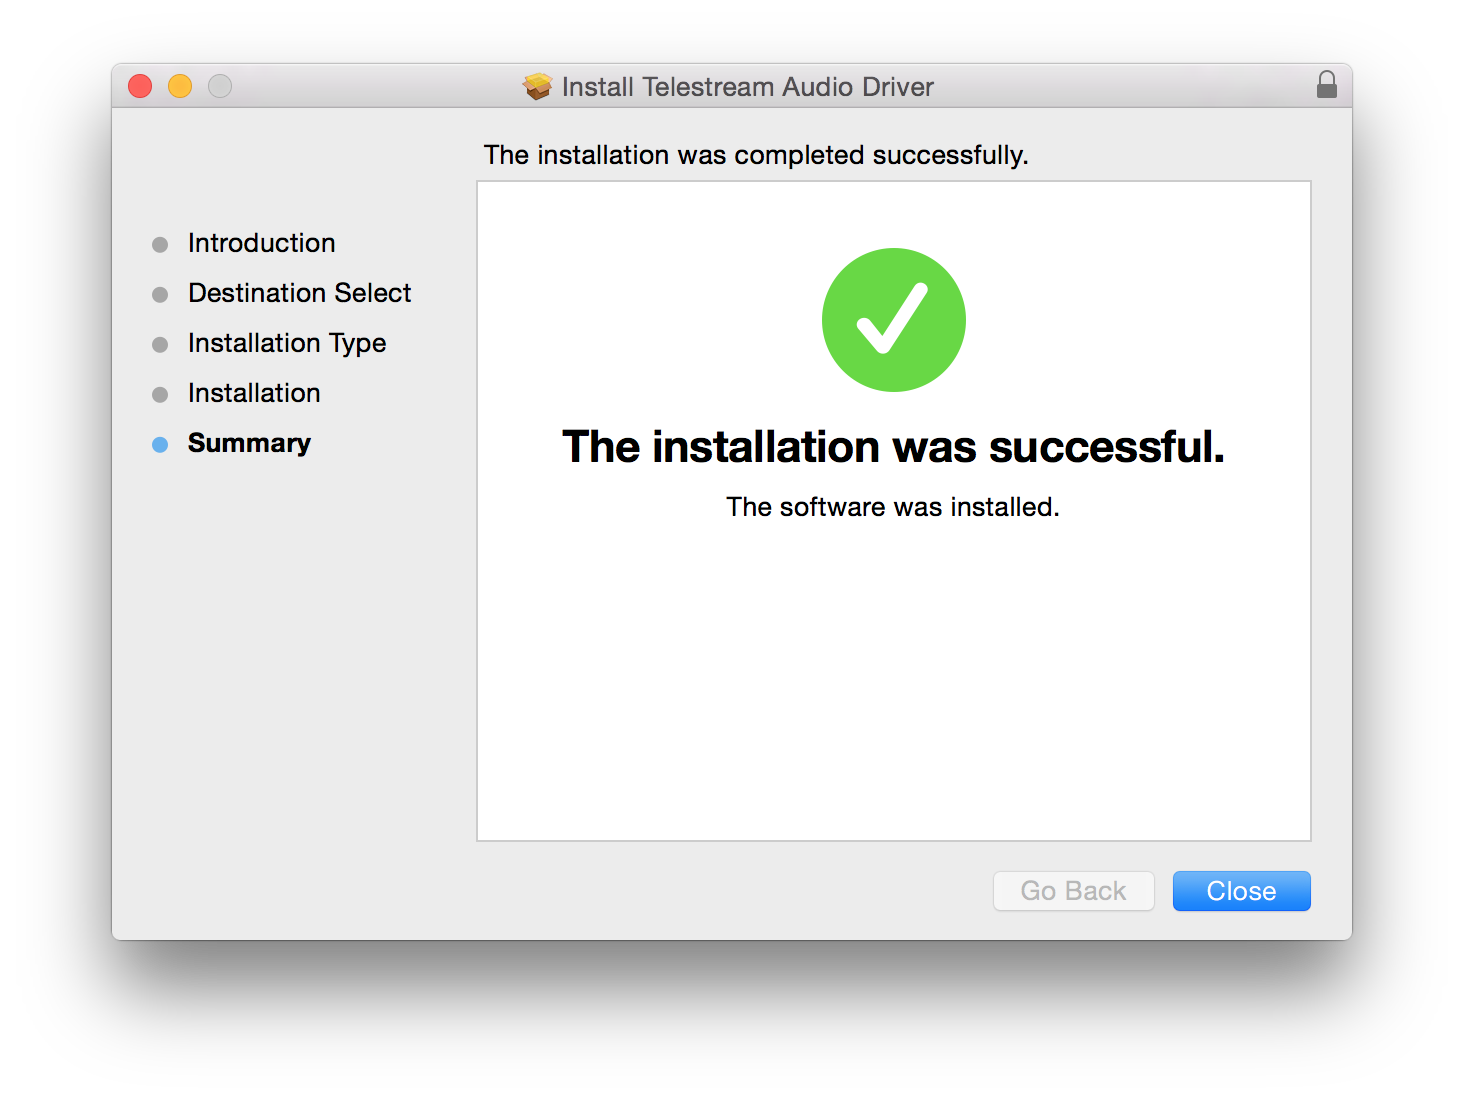 The installation was completed successfully / The installation was successful / The software was installed